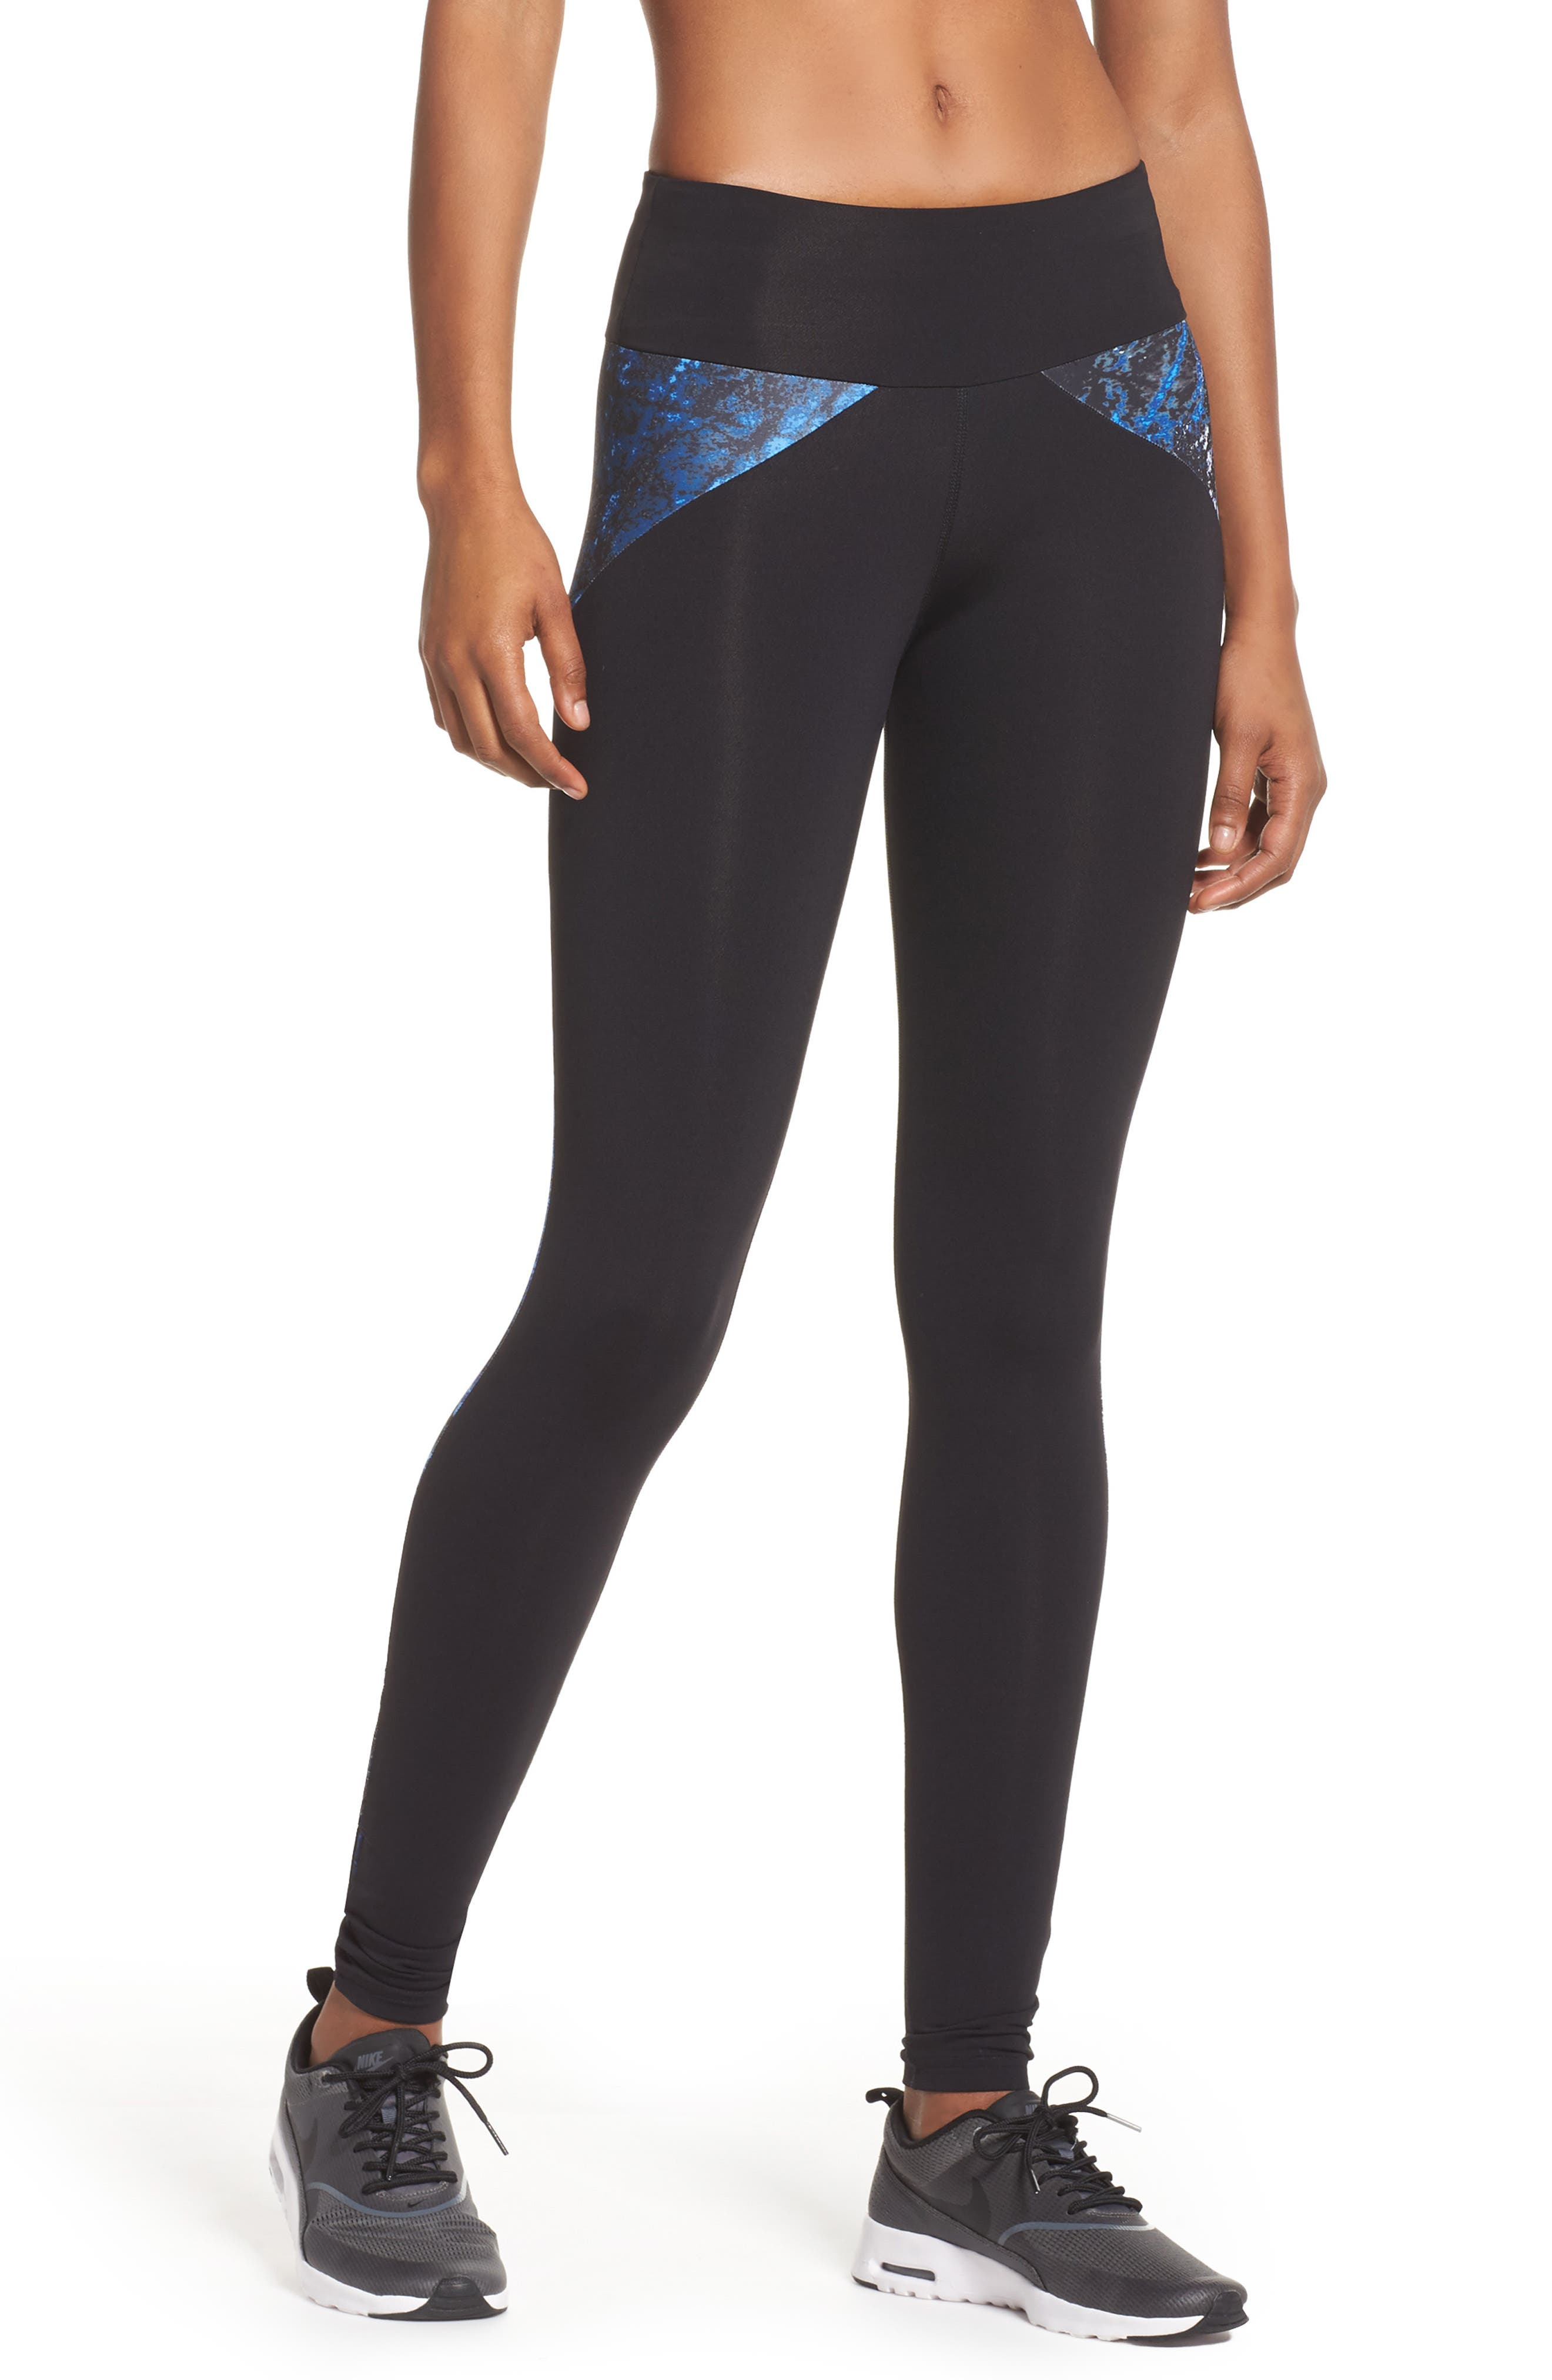 BoomBoom Athletica Colorblock Leggings